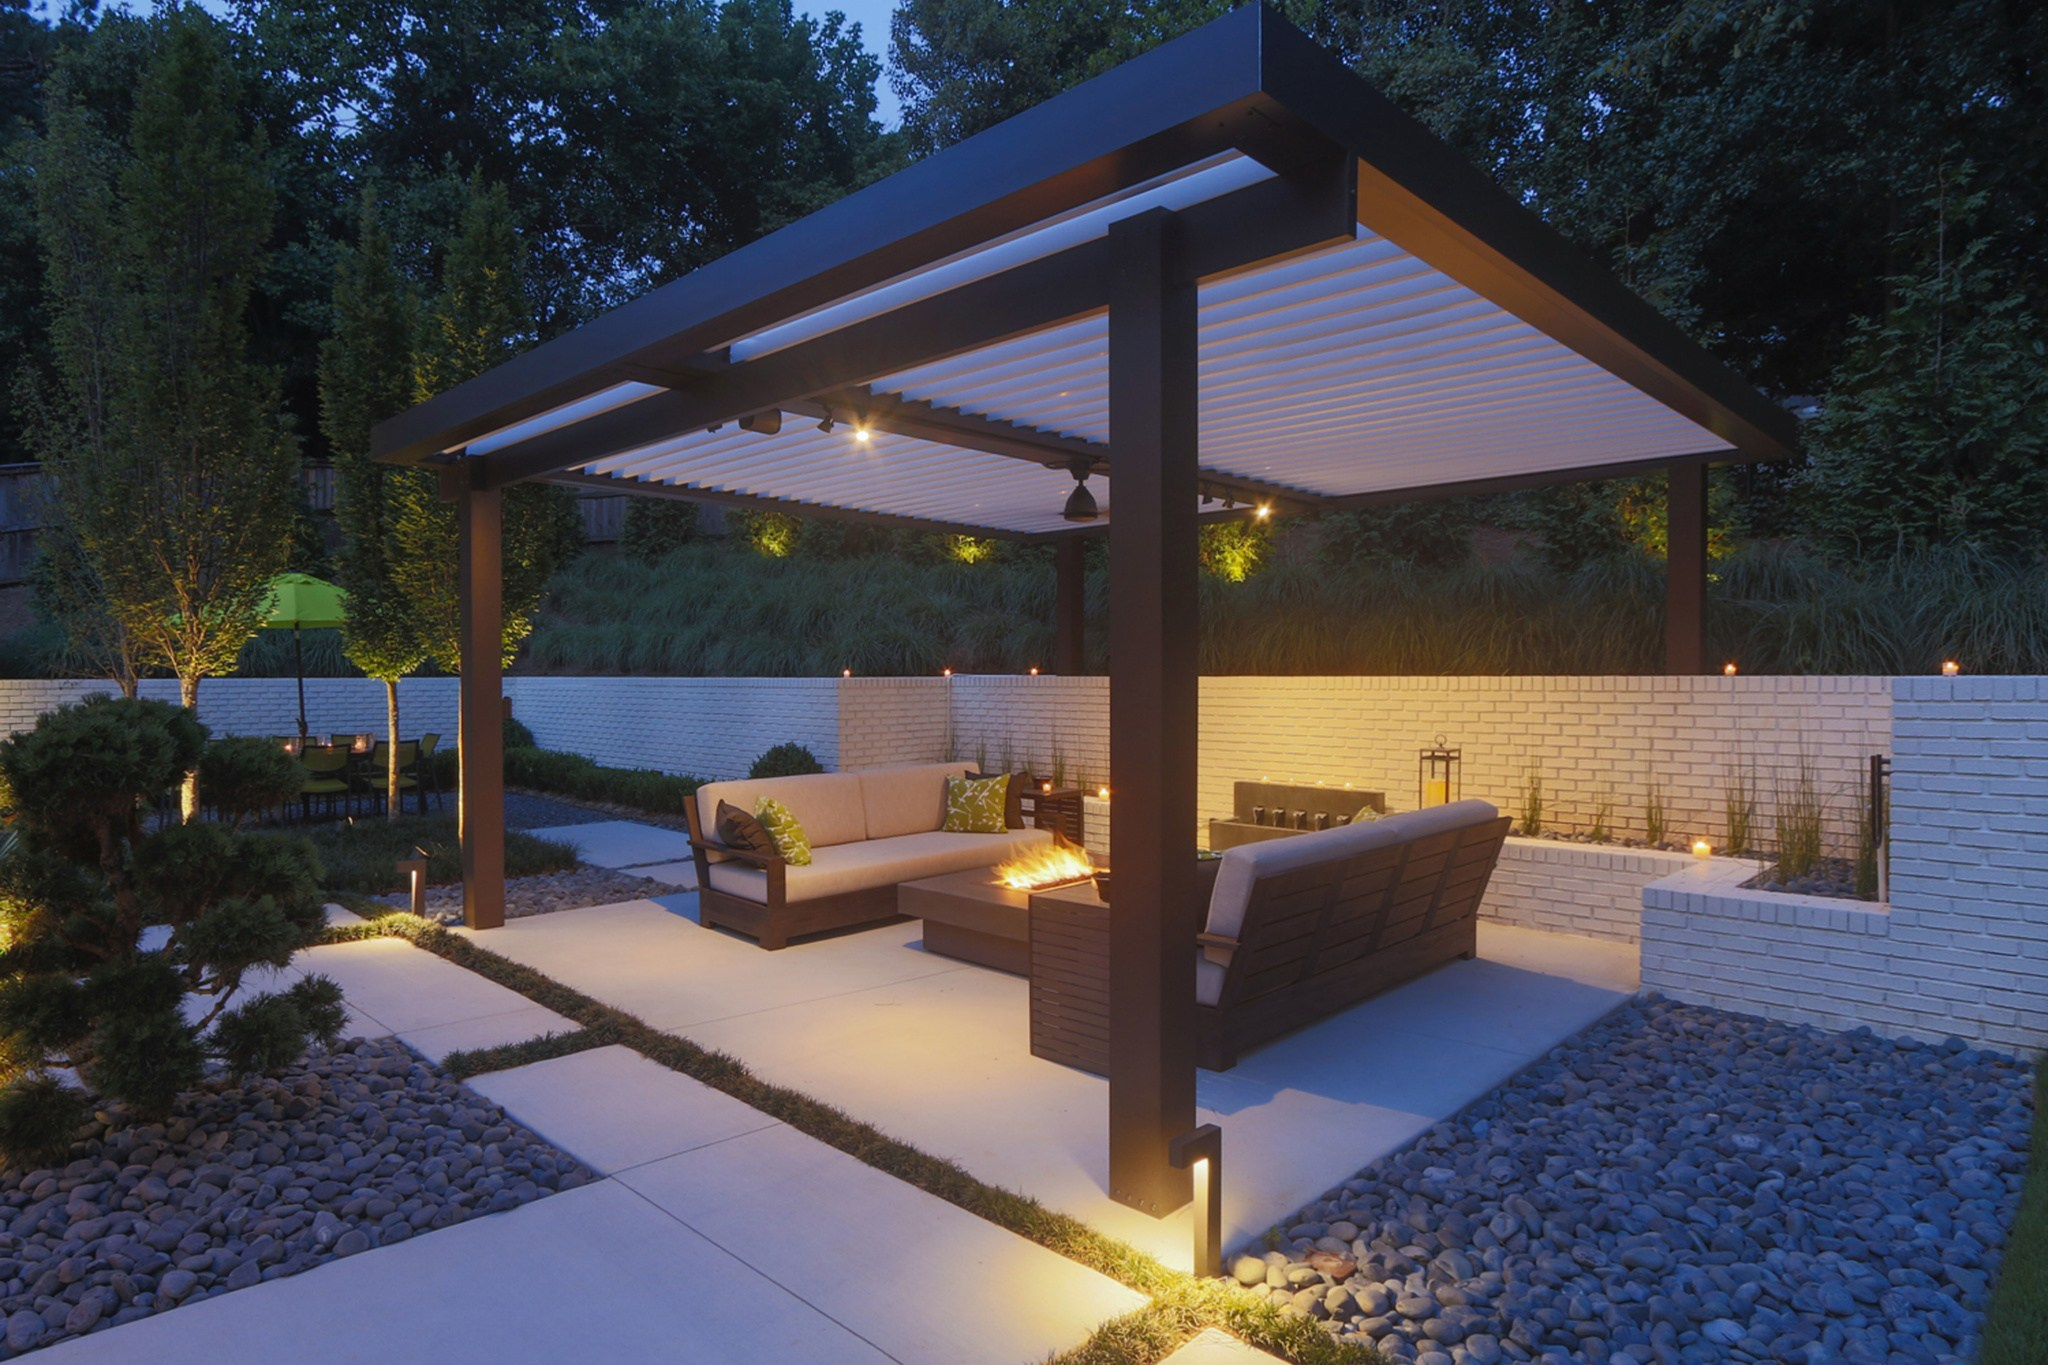 19 Stylish Patio Cover Ideas Rfmc Inc The Remodeling Specialist inside Backyard Patio Roof Ideas